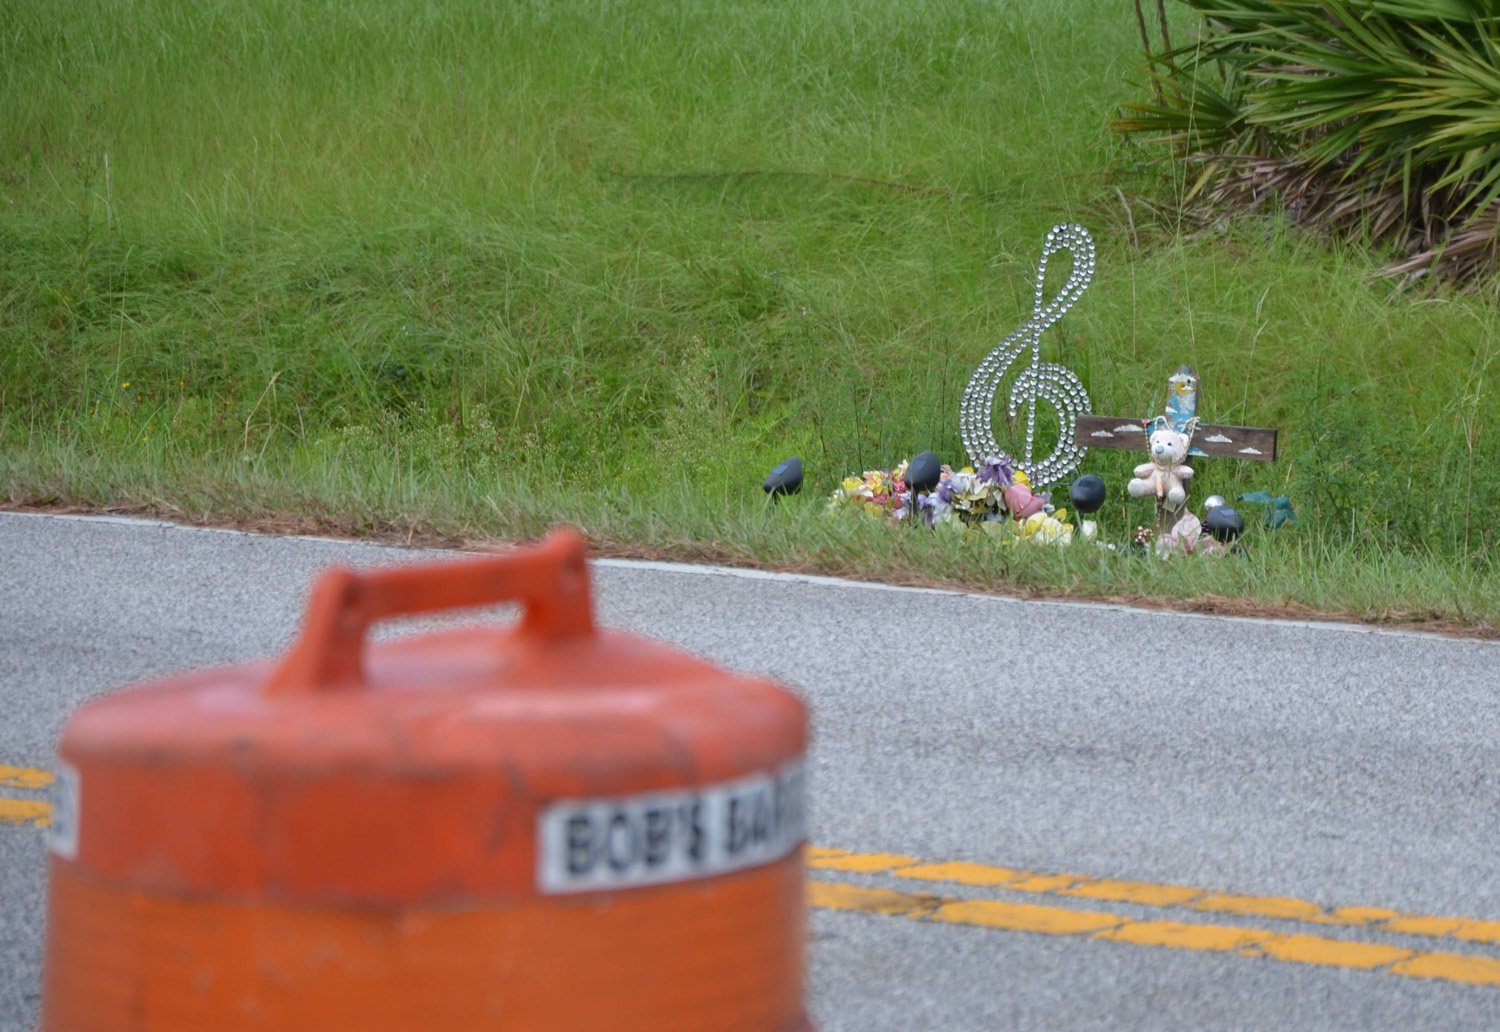 Michelle Taylor's memorial on Lakeview Boulevard in Palm Coast, opposite the construction site where a path will be built, a year and a half after she was killed by a passing car on the dark road. (© FlaglerLive)